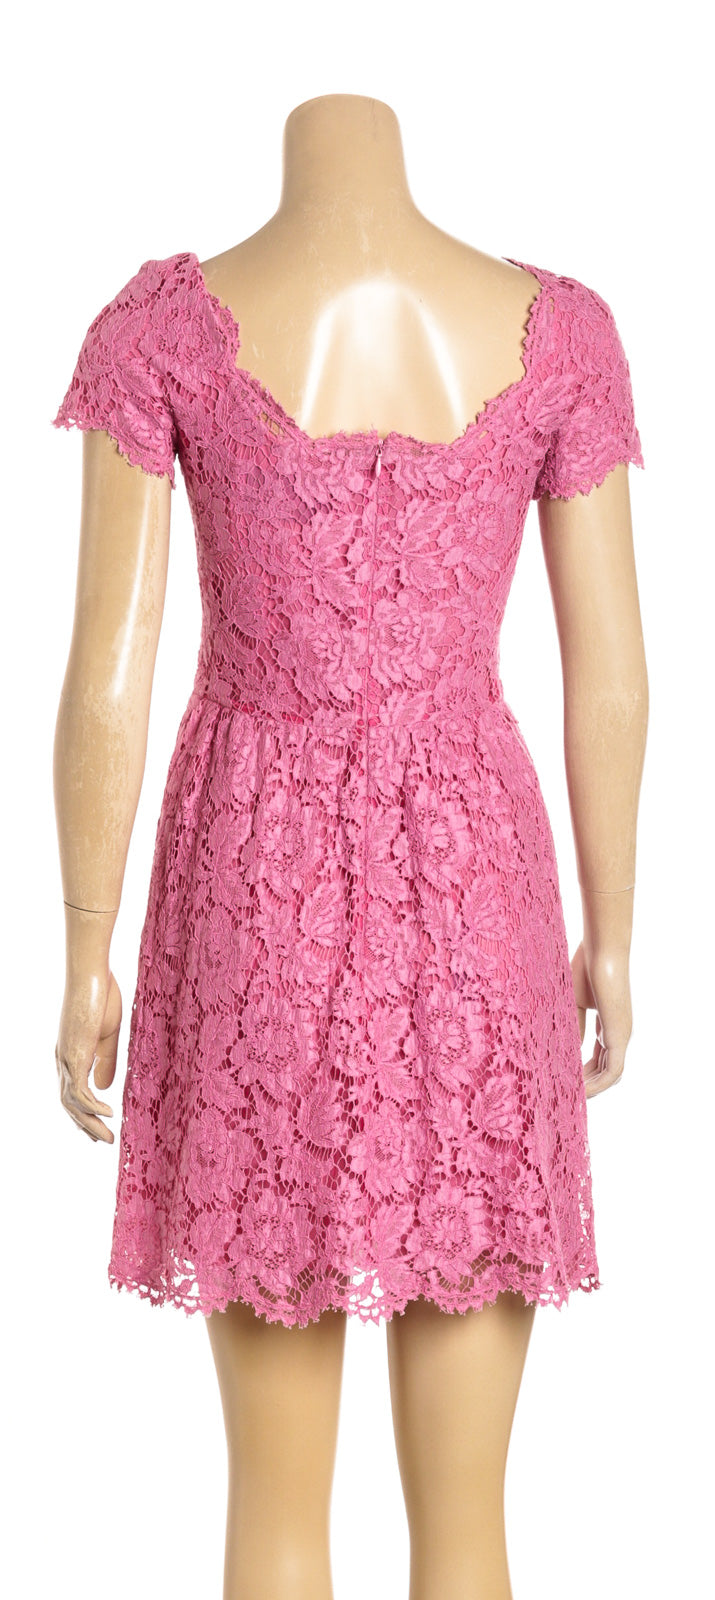 Valentino Pink Short Sleeve Lace Mini Dress (Size 40)